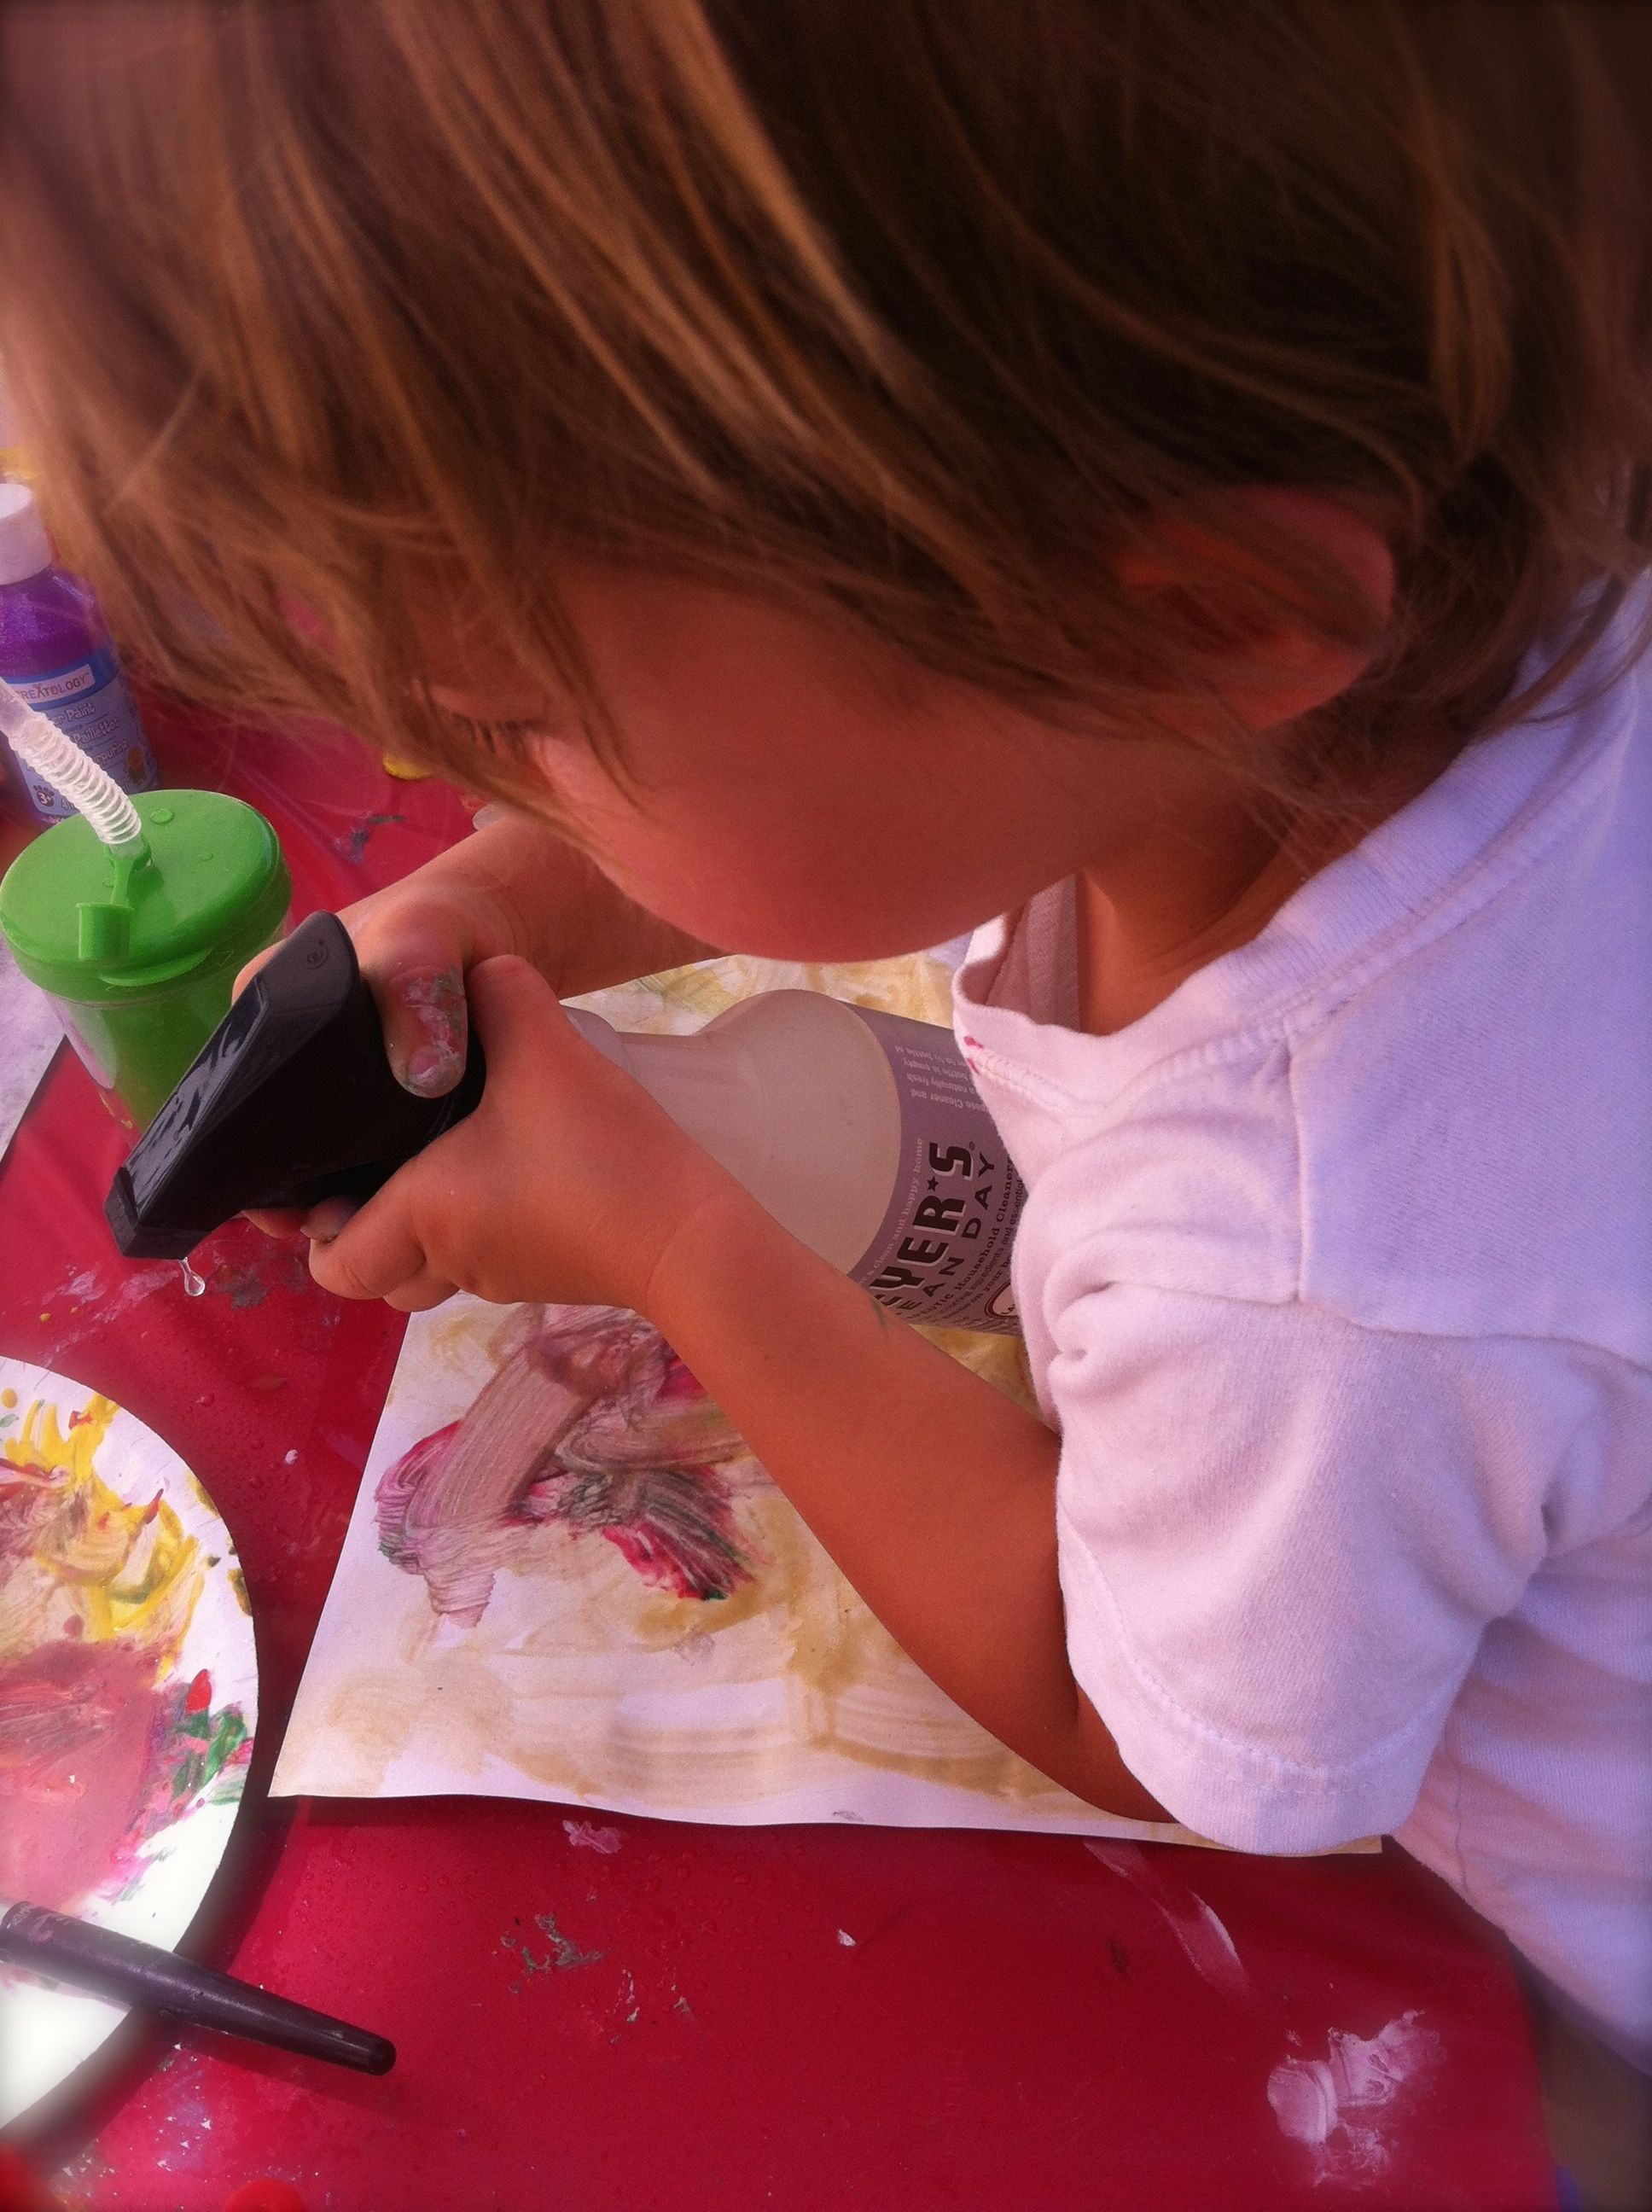 How To Make Spray Paint Food Safe